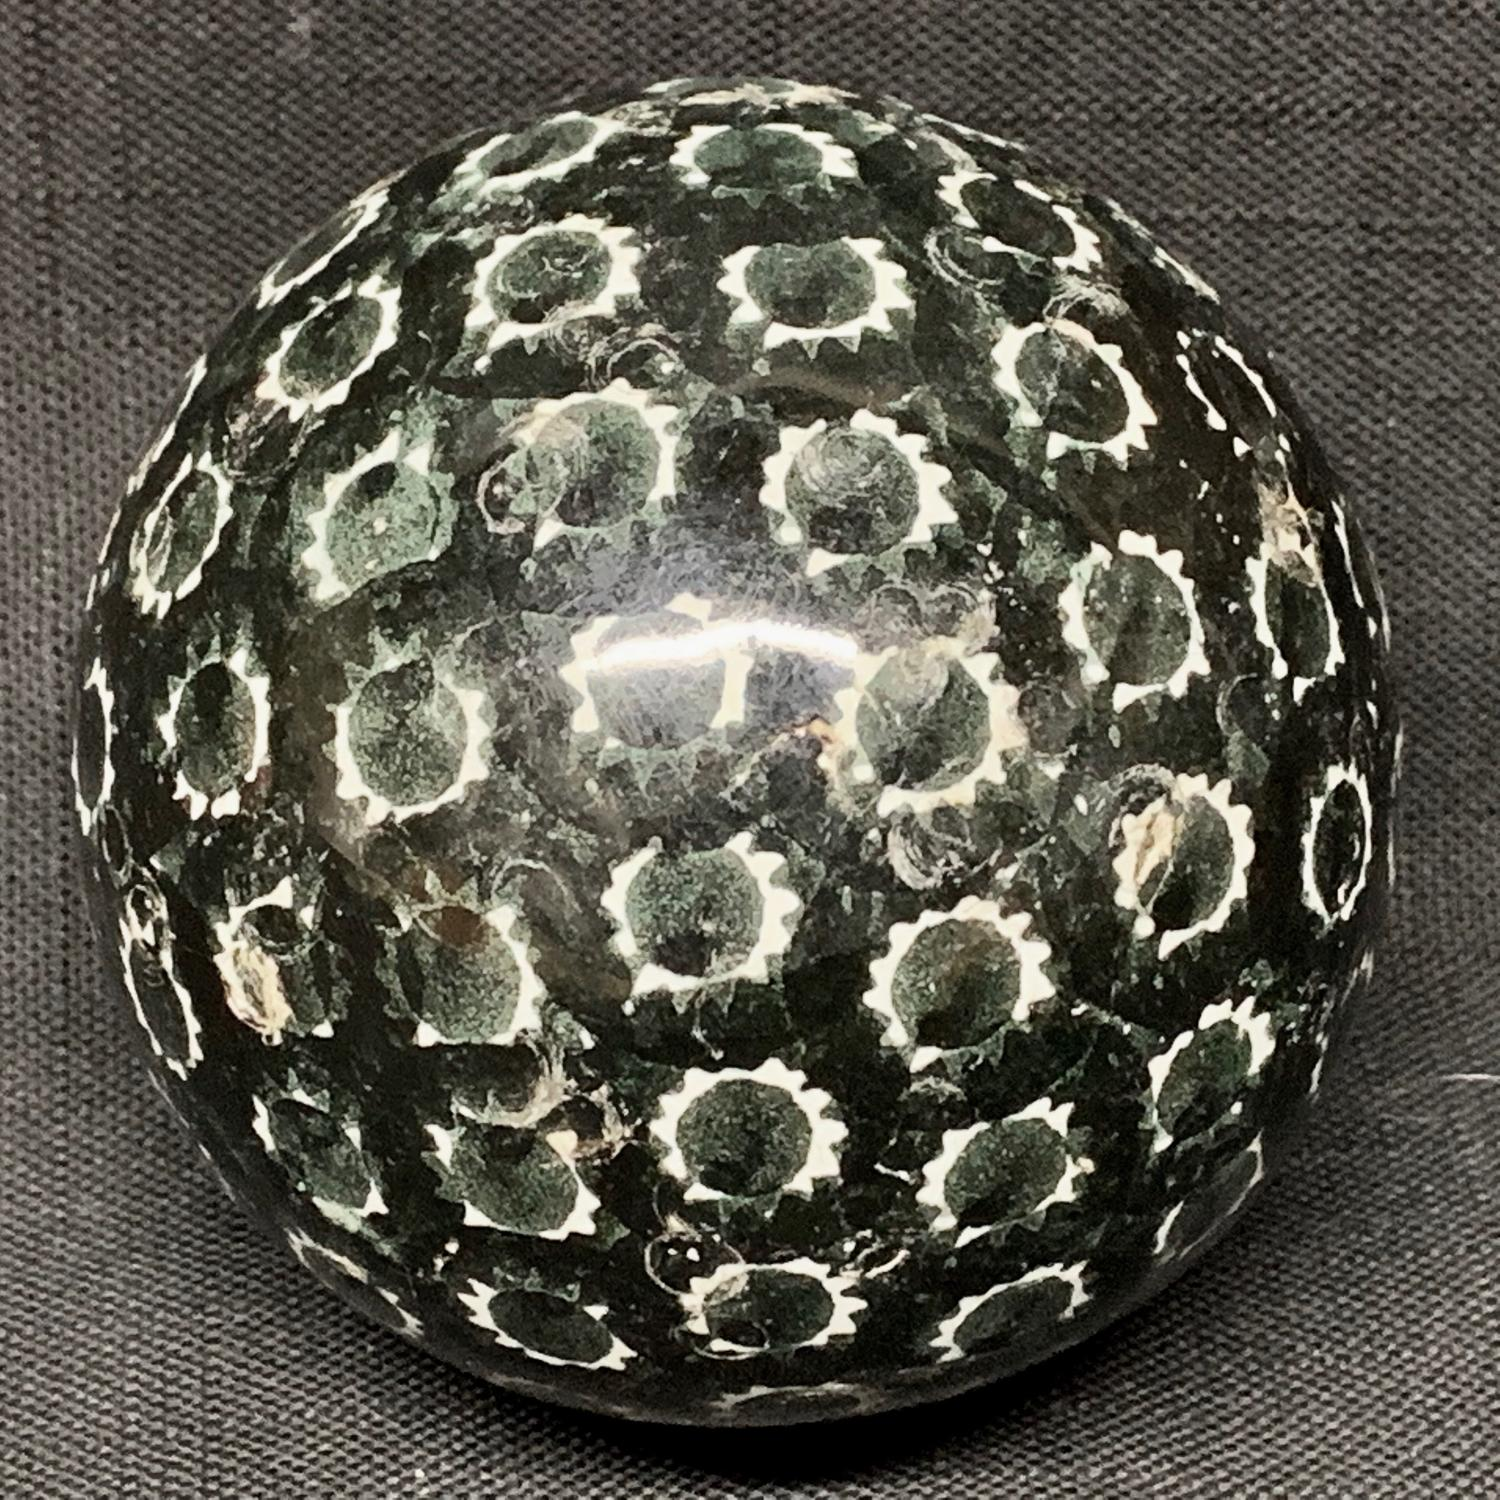 Spongeware Black Scottish Carpet Ball Boule 1860